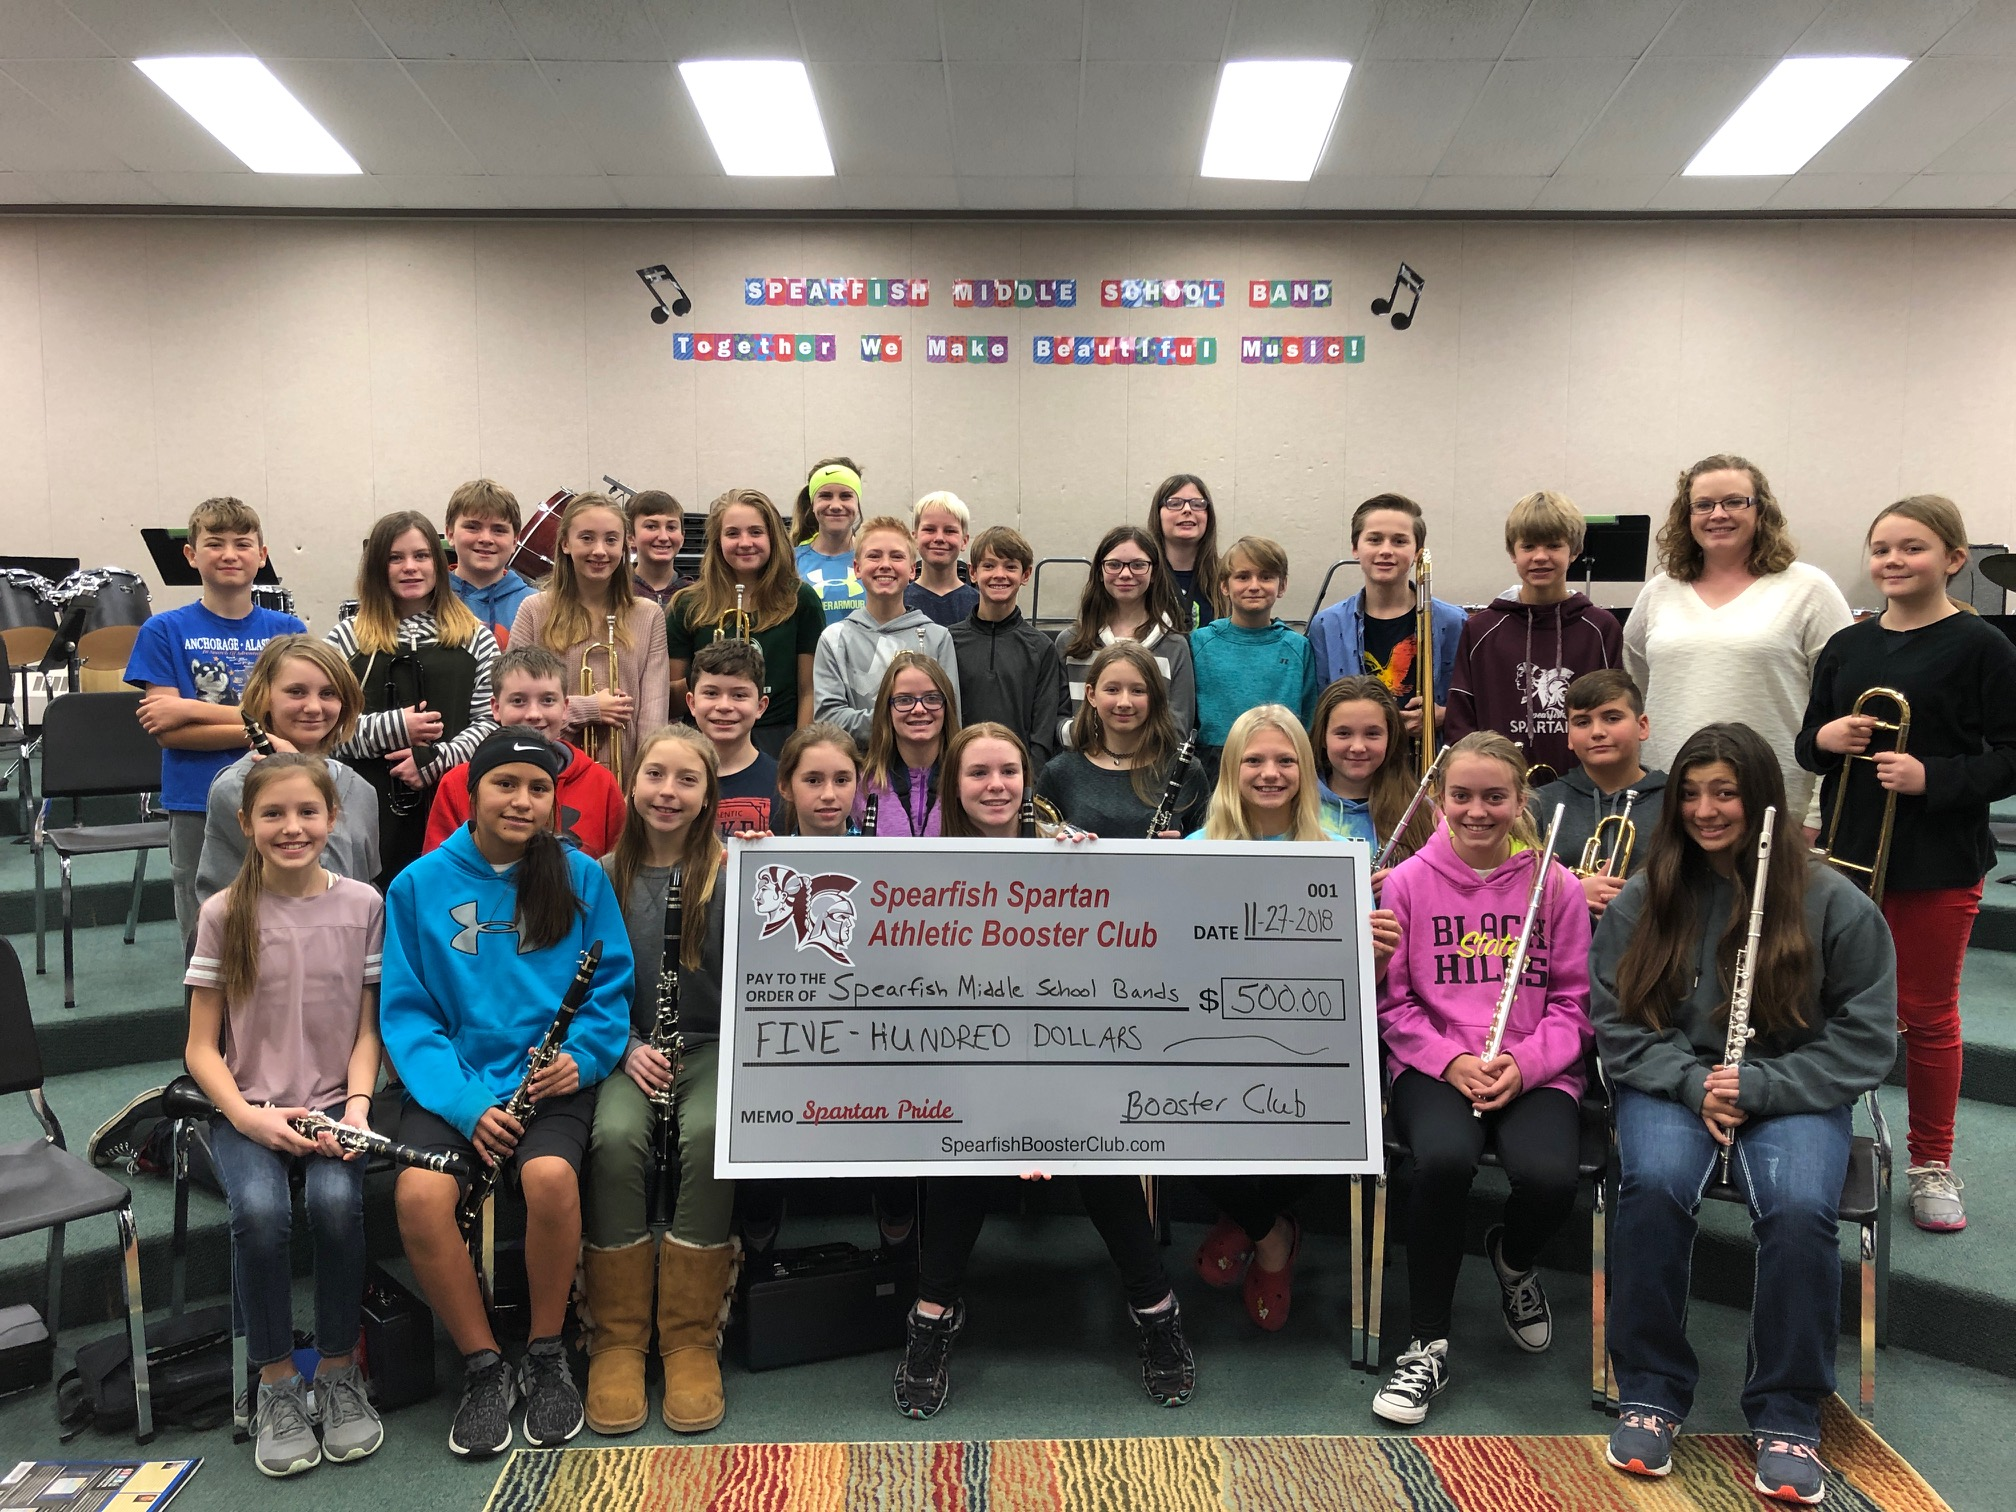 The Spearfish Spartan Athletic Booster Club presented a check in the amount of $500 to the Spearfish Middle School Band Program in gratitude for encouraging students to become involved in band, in hopes that they will continue on with their love of music at the high school level. The Booster Club's mission is to recognize student athletes and boost school spirit and community pride. Pictured are members of the 7th grade band with Mrs. Case, the middle school band director.